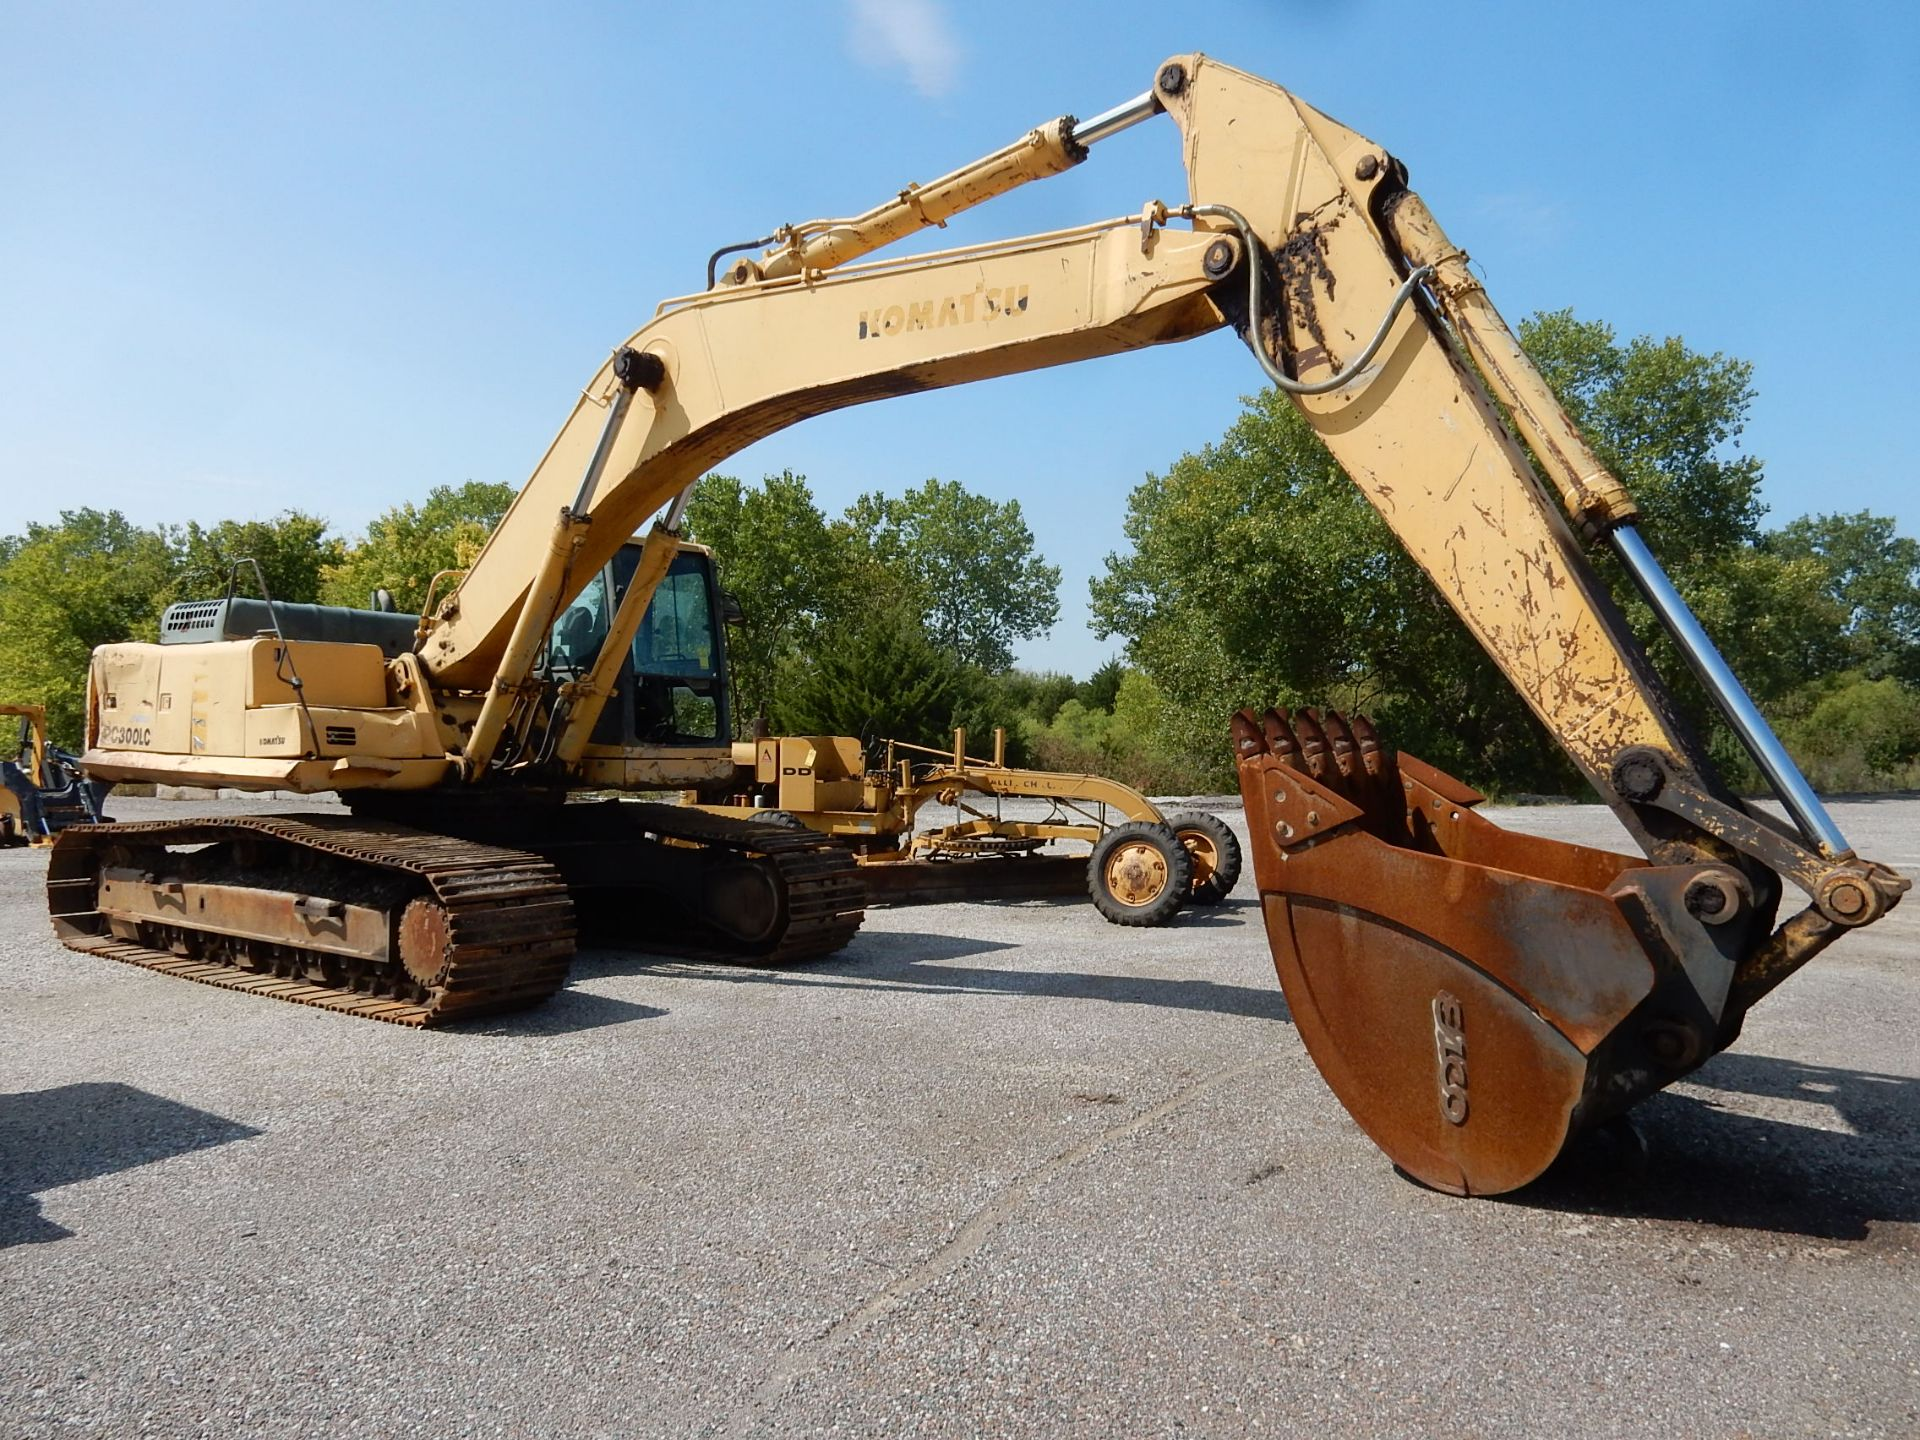 1997 KOMATSU EXCAVATOR, M# PC300LC-6LC, S/N A80735, HOURS N/A, 3-YD BUCKET, MISSING FRONT GLASS - Image 6 of 6